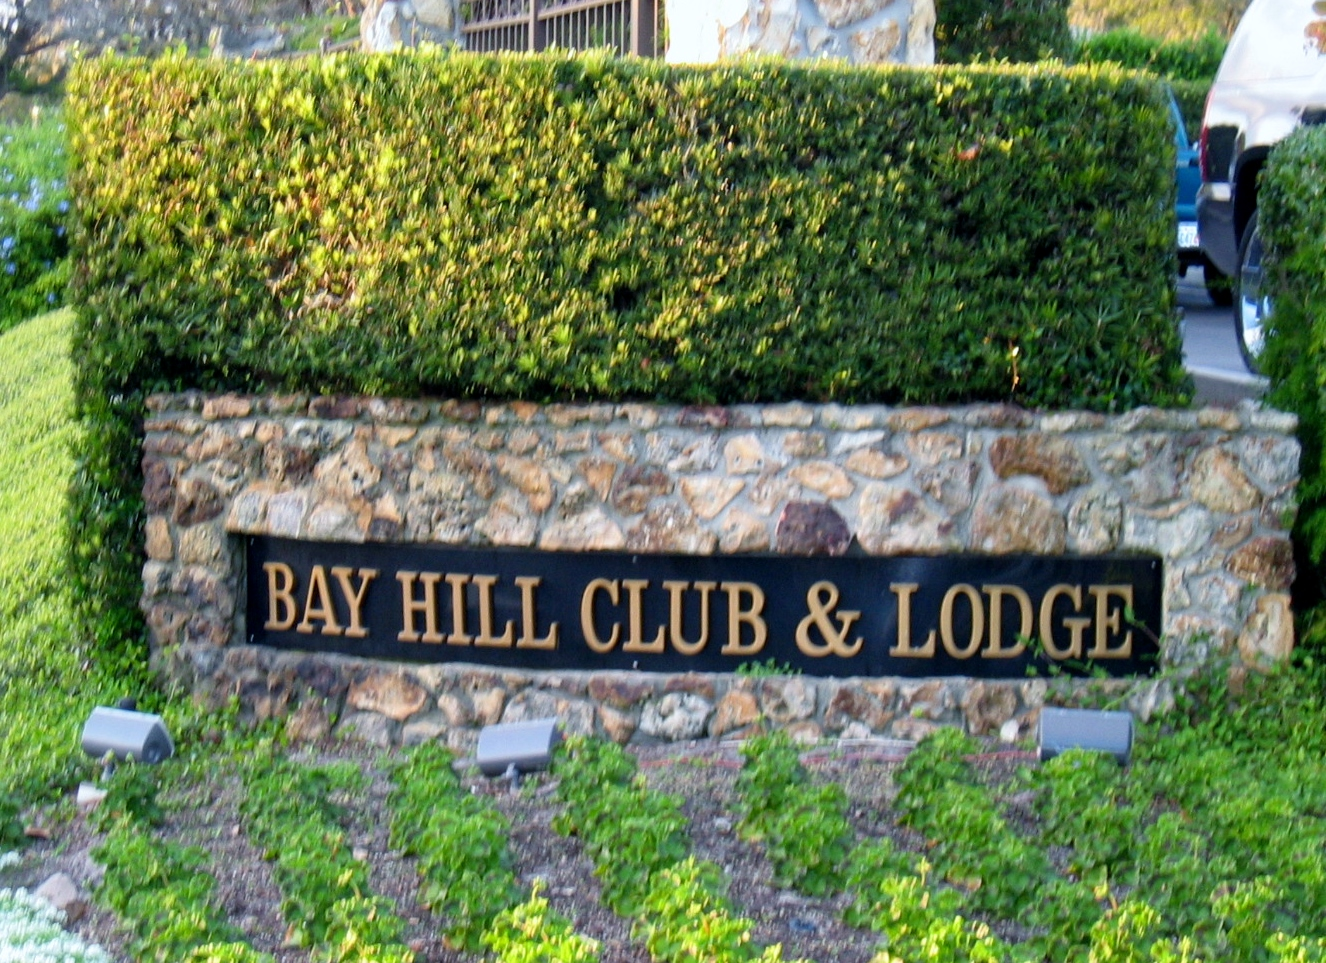 The Arnold Palmer Bay Hill Club & Lodge